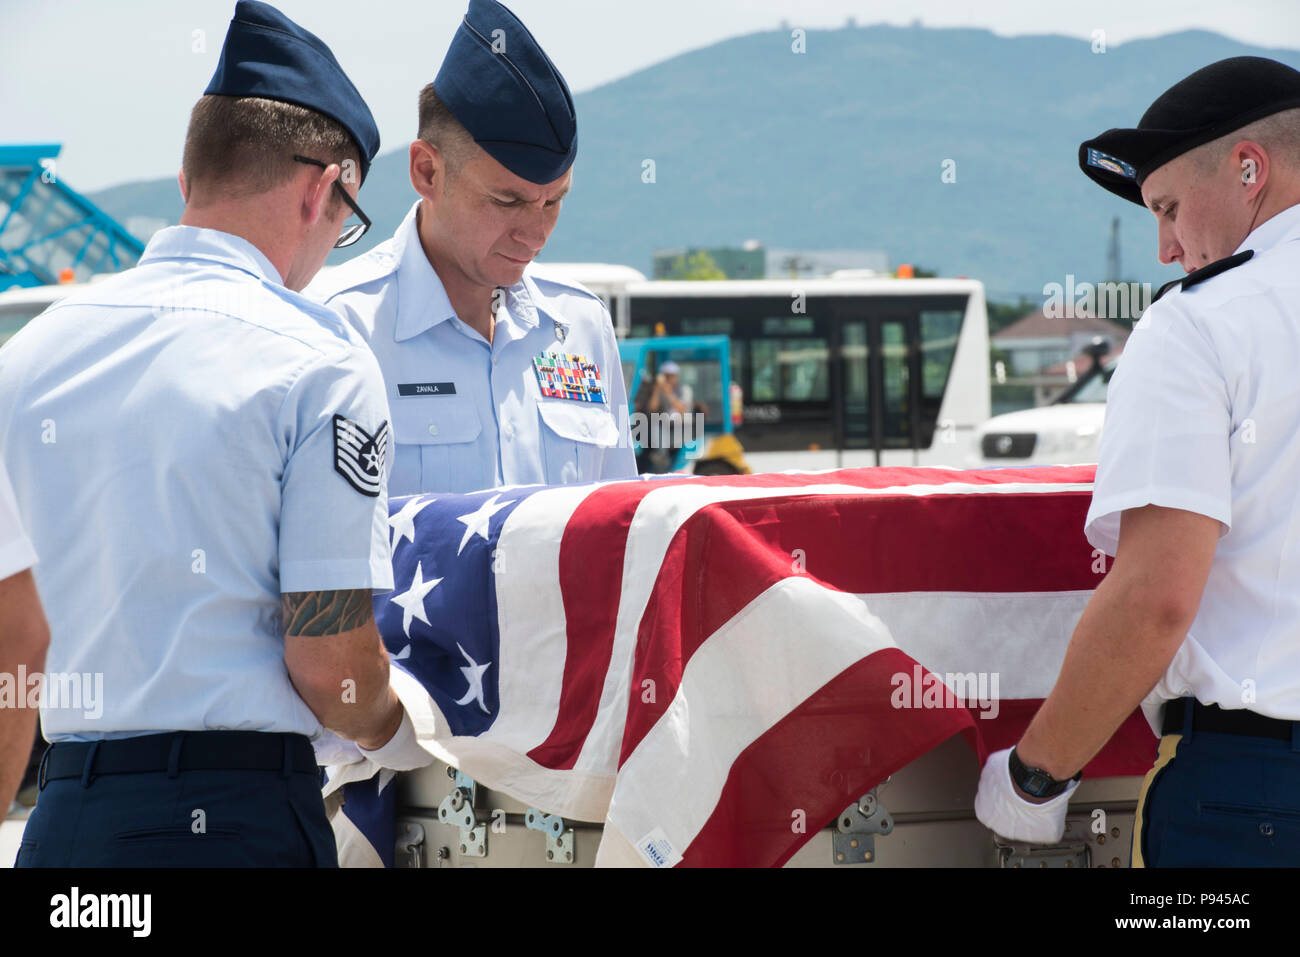 U.S. service members assigned to the Defense POW/MIA Accounting Agency (DPAA), drape a transfer case with the American flag during a repatriation ceremony, Da Nang, Socialist Republic of Vietnam, July 8, 2018. The ceremony was conducted in support of DPAA's mission to provide the fullest possible accounting of our missing personnel to their families and the nation. (U.S. Navy photo by Mass Communication Specialist 2nd Class Claire Farin) - Stock Image